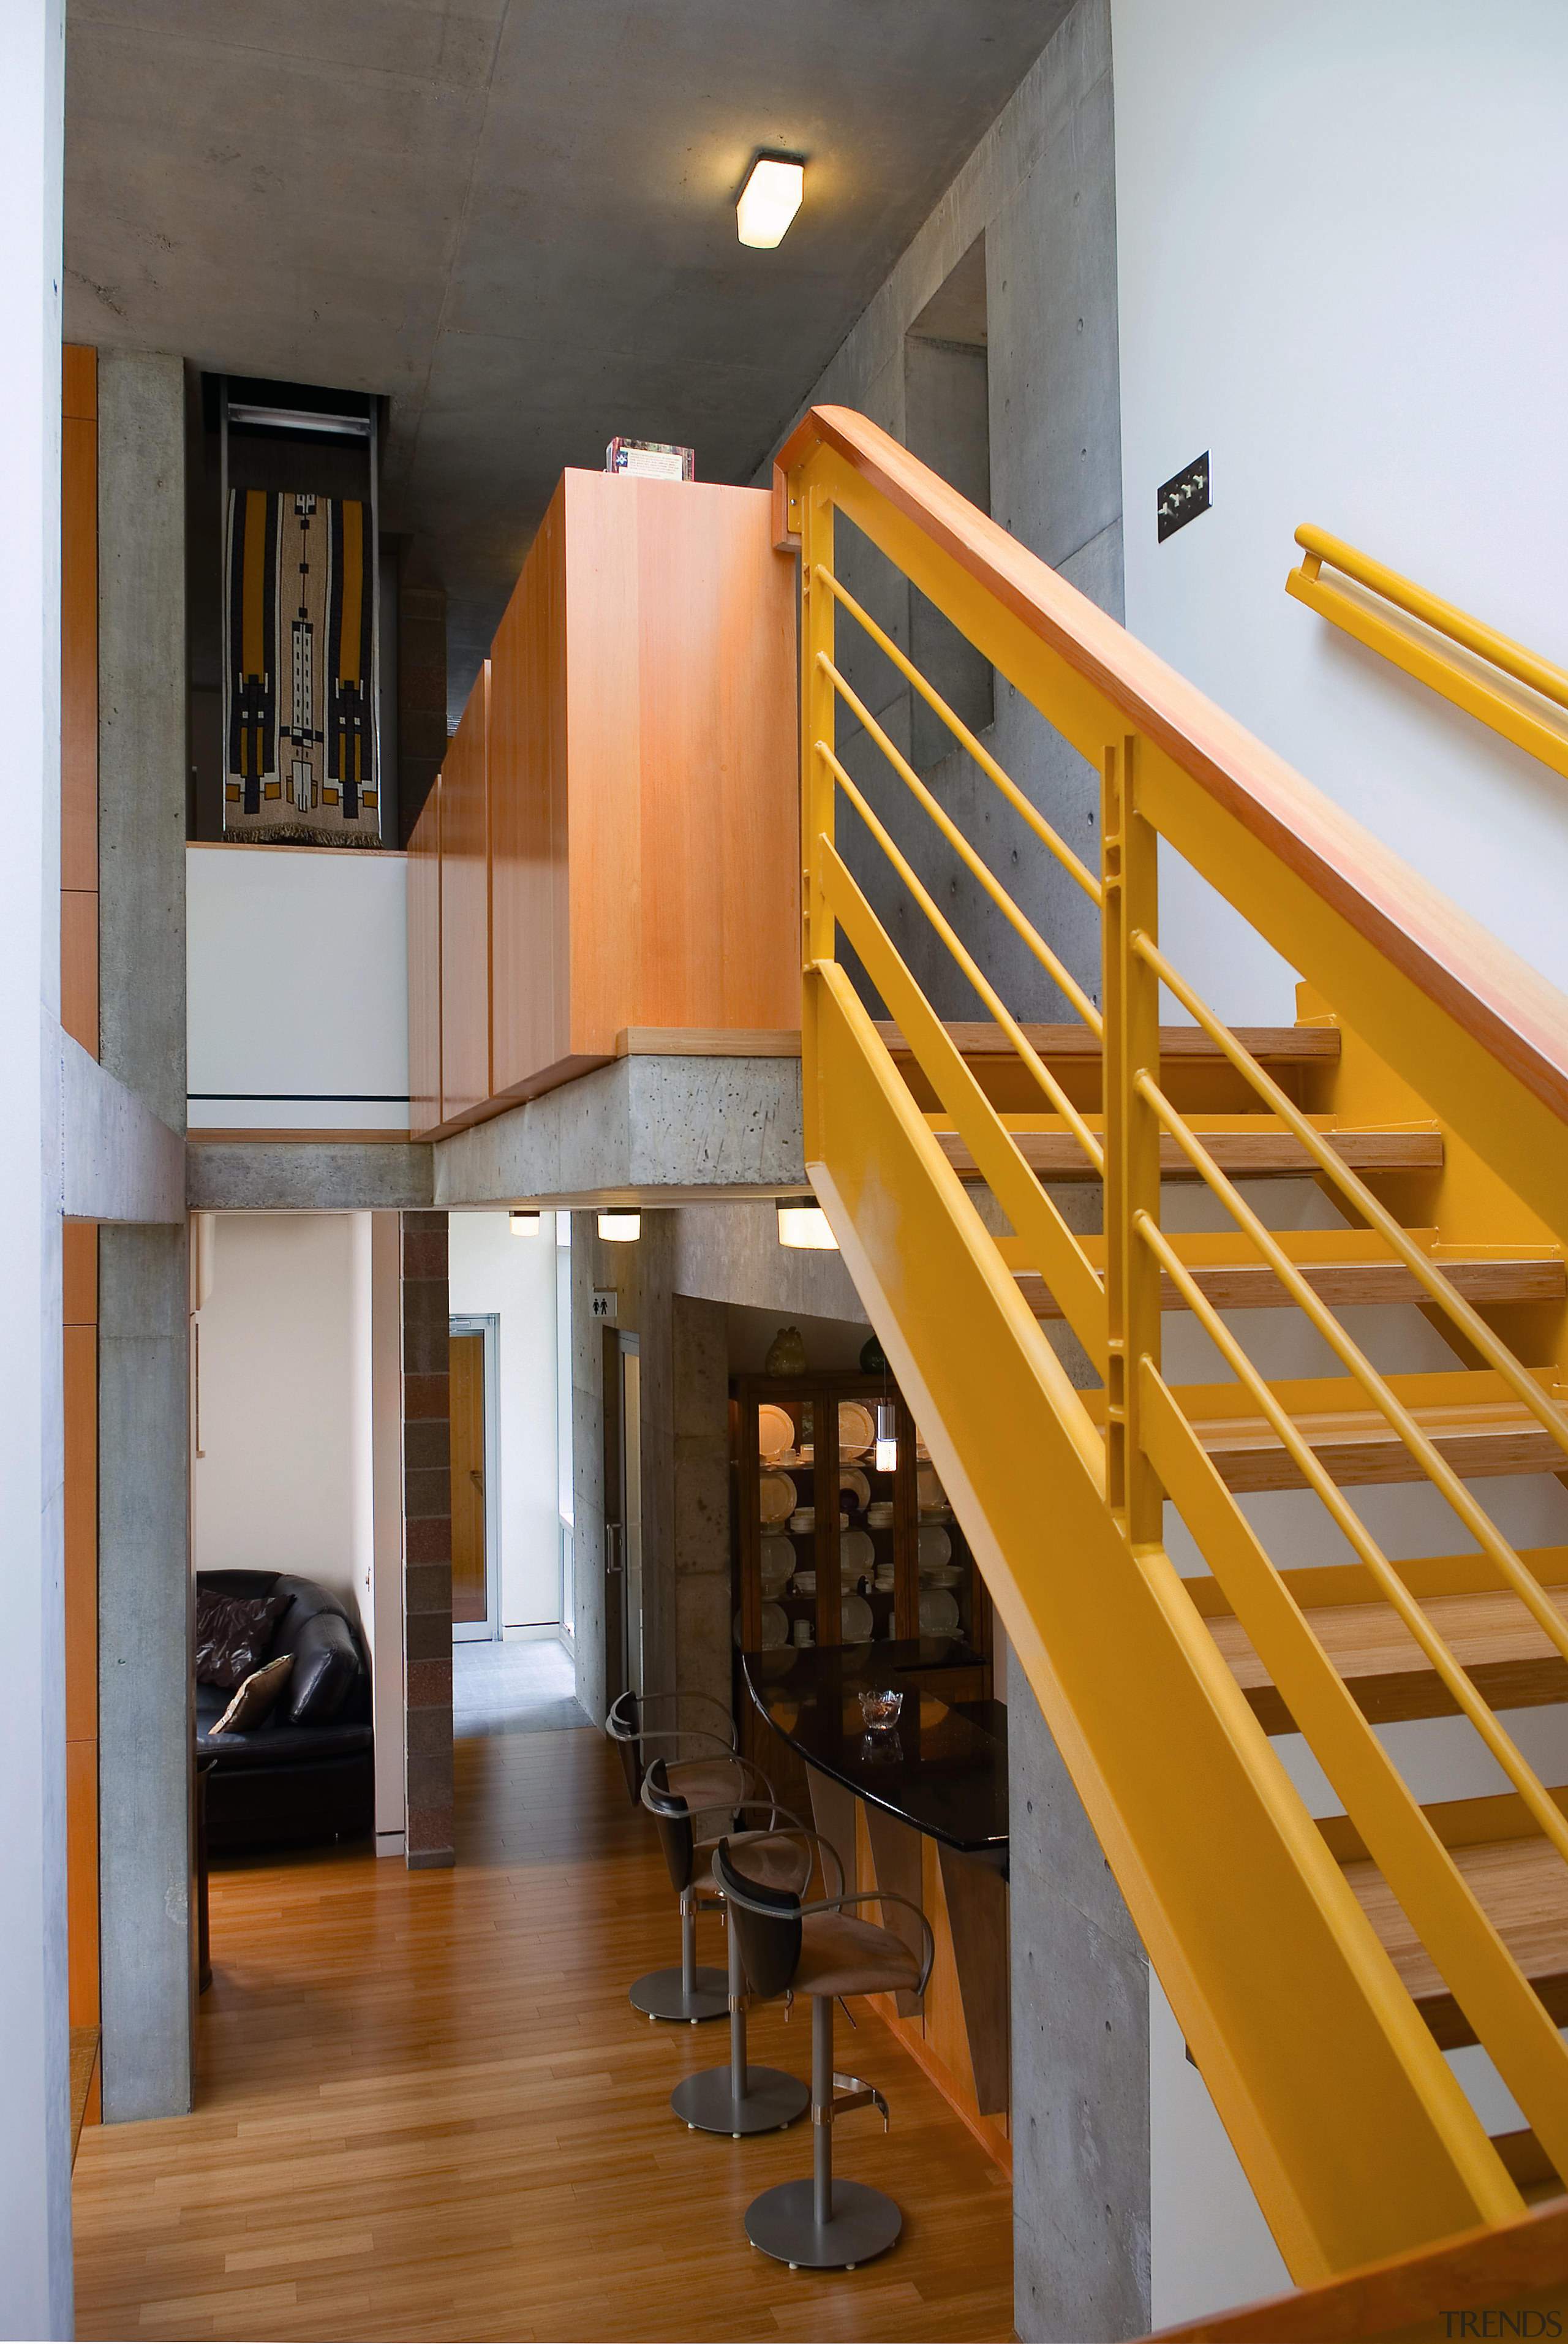 A view of the timber staircase, timber flooring architecture, daylighting, handrail, house, interior design, loft, stairs, wood, gray, brown